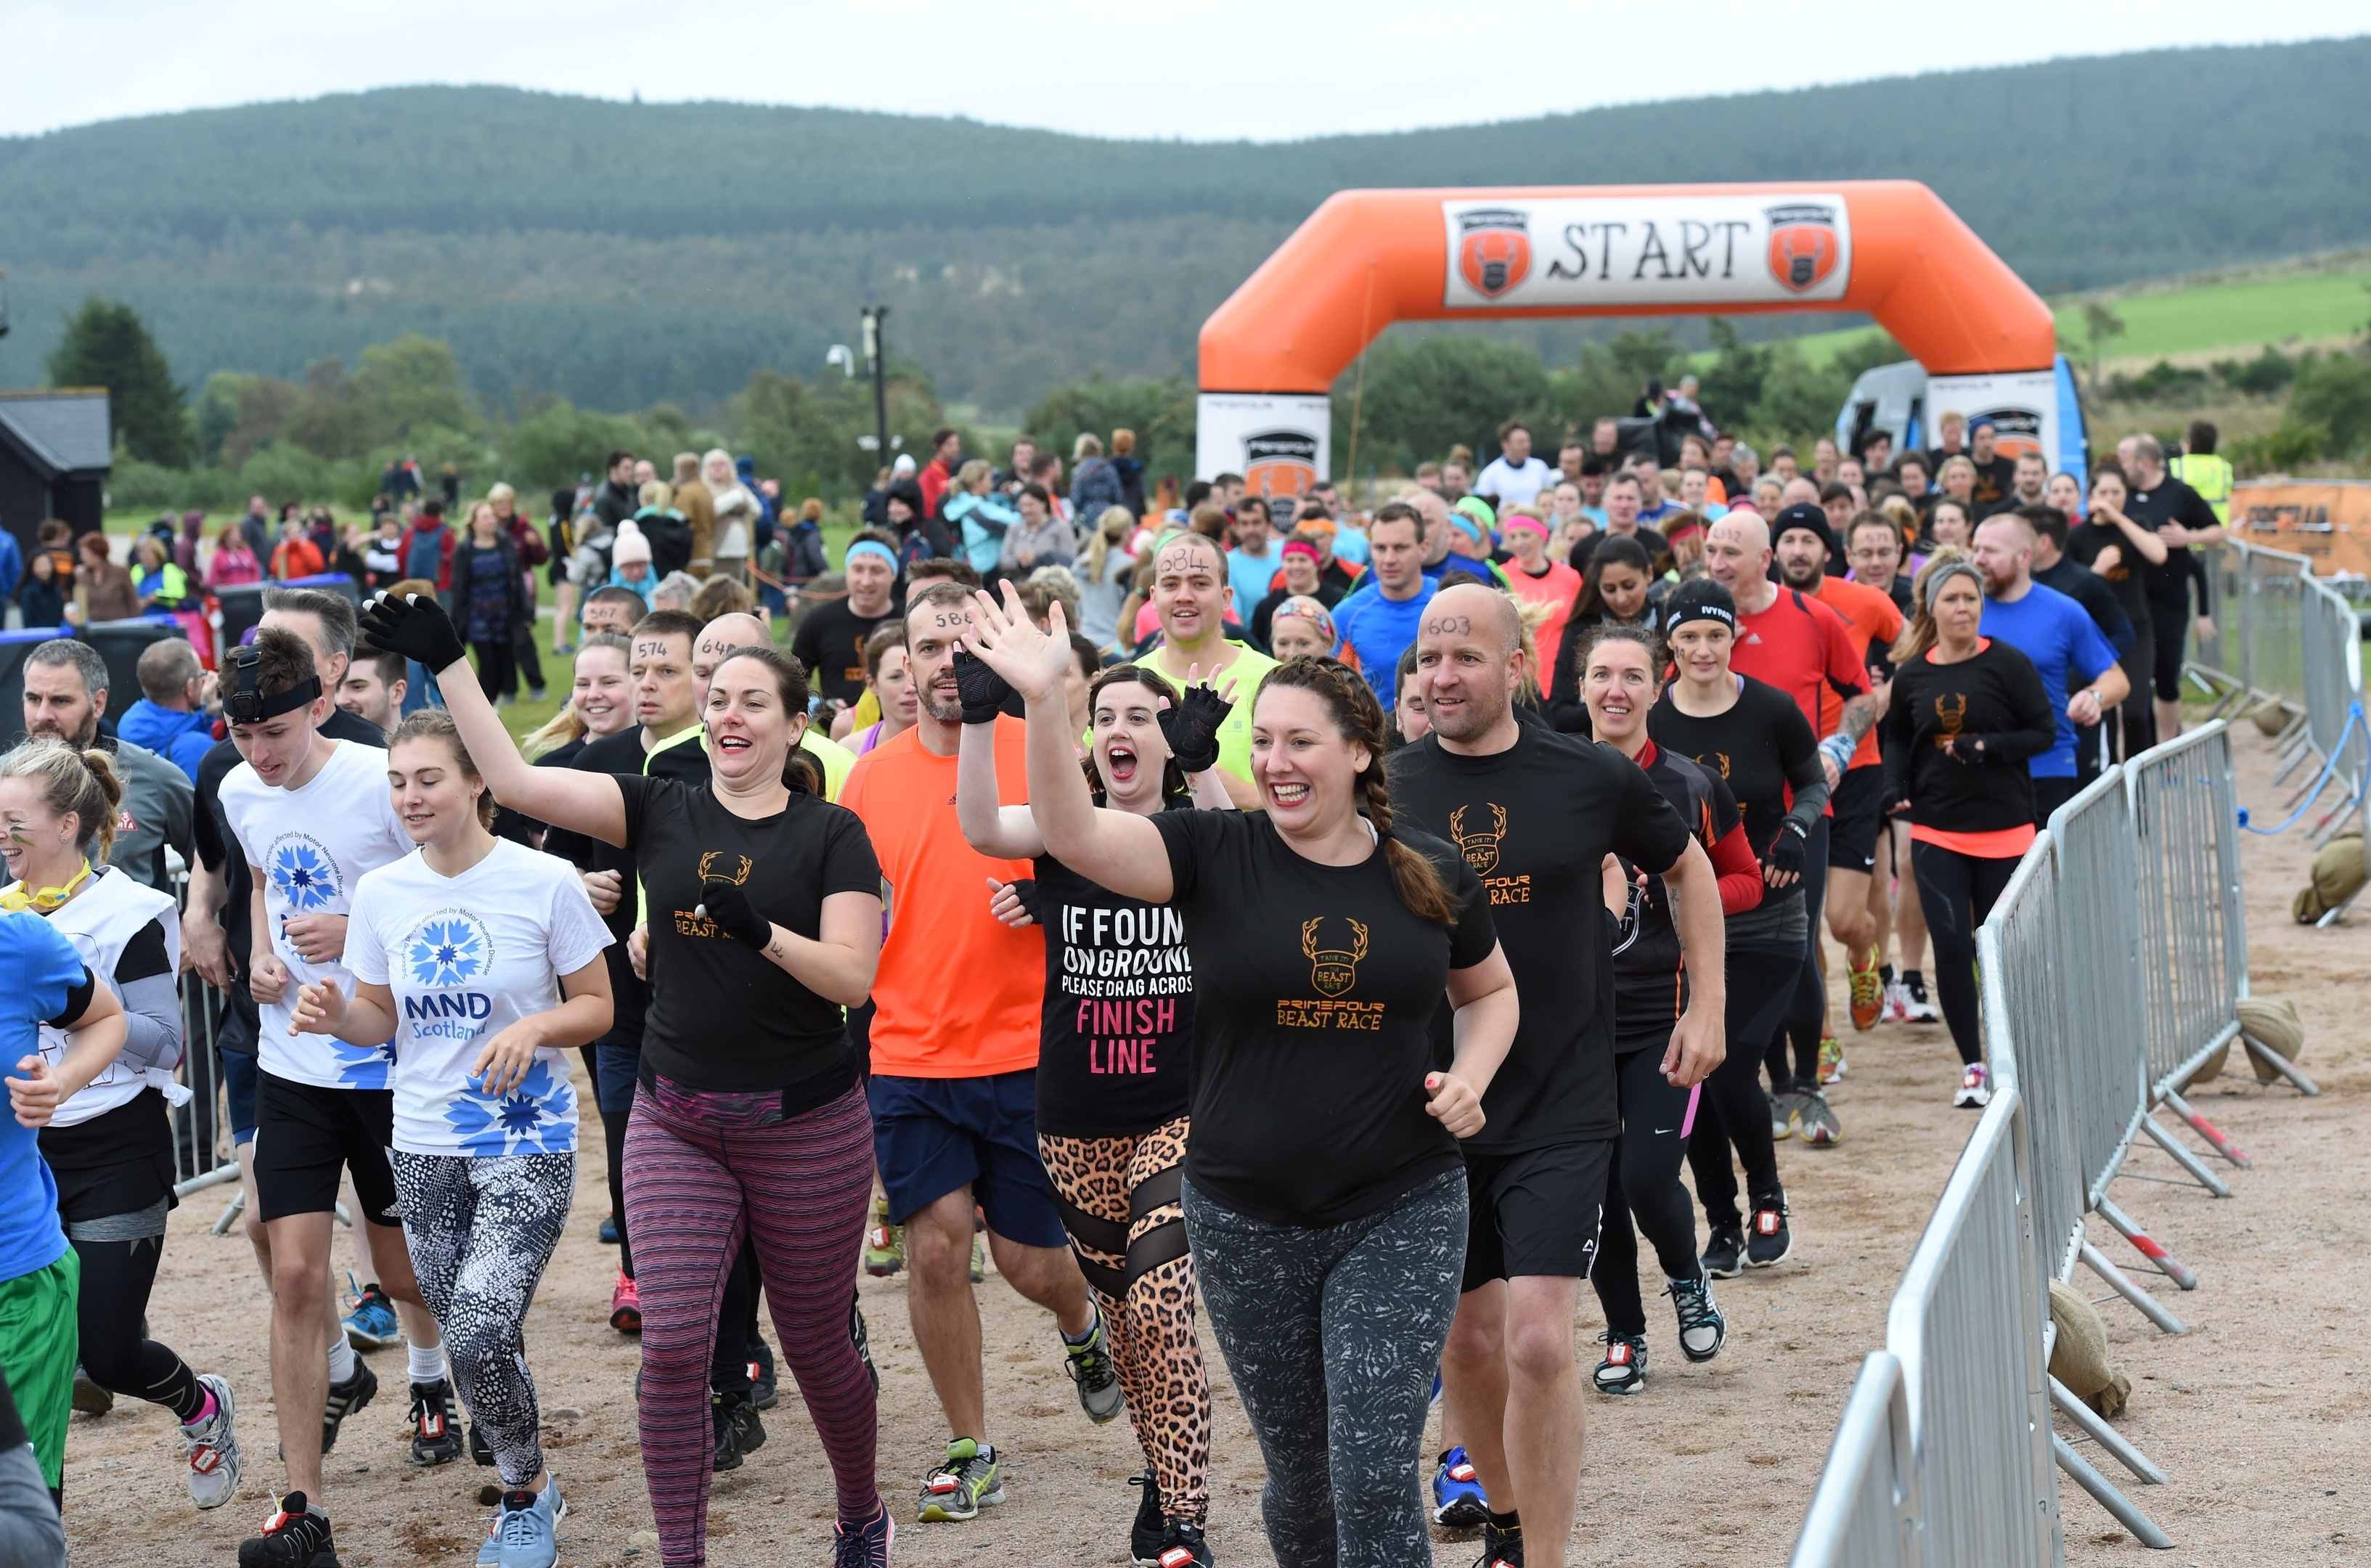 Banchory Beast Race at Knockburn Loch. Picture by KEVIN EMSLIE